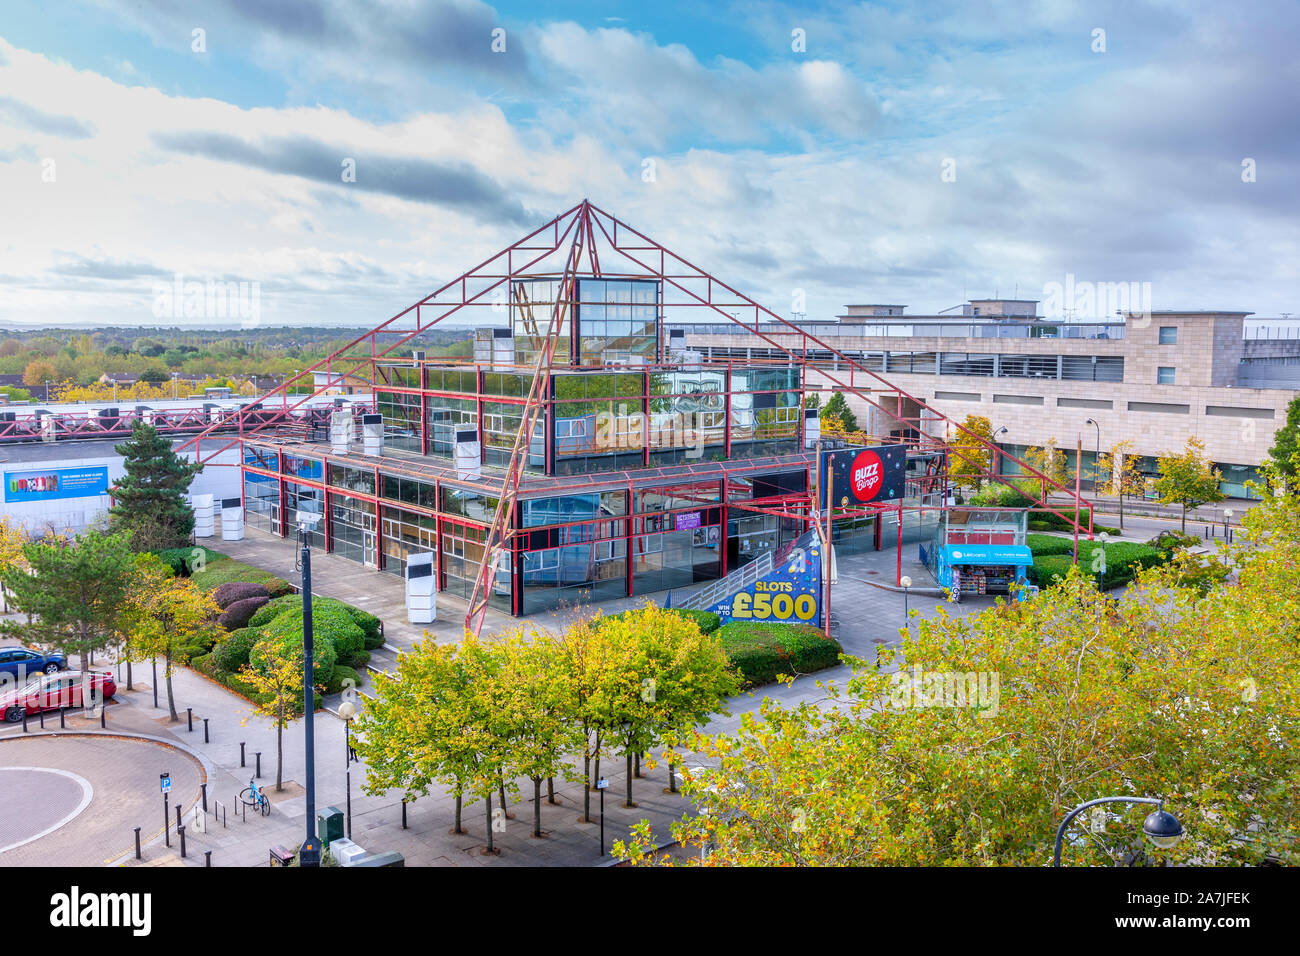 The Point is an entertainment complex in Central Milton Keynes, Buckinghamshire, England. Stock Photo